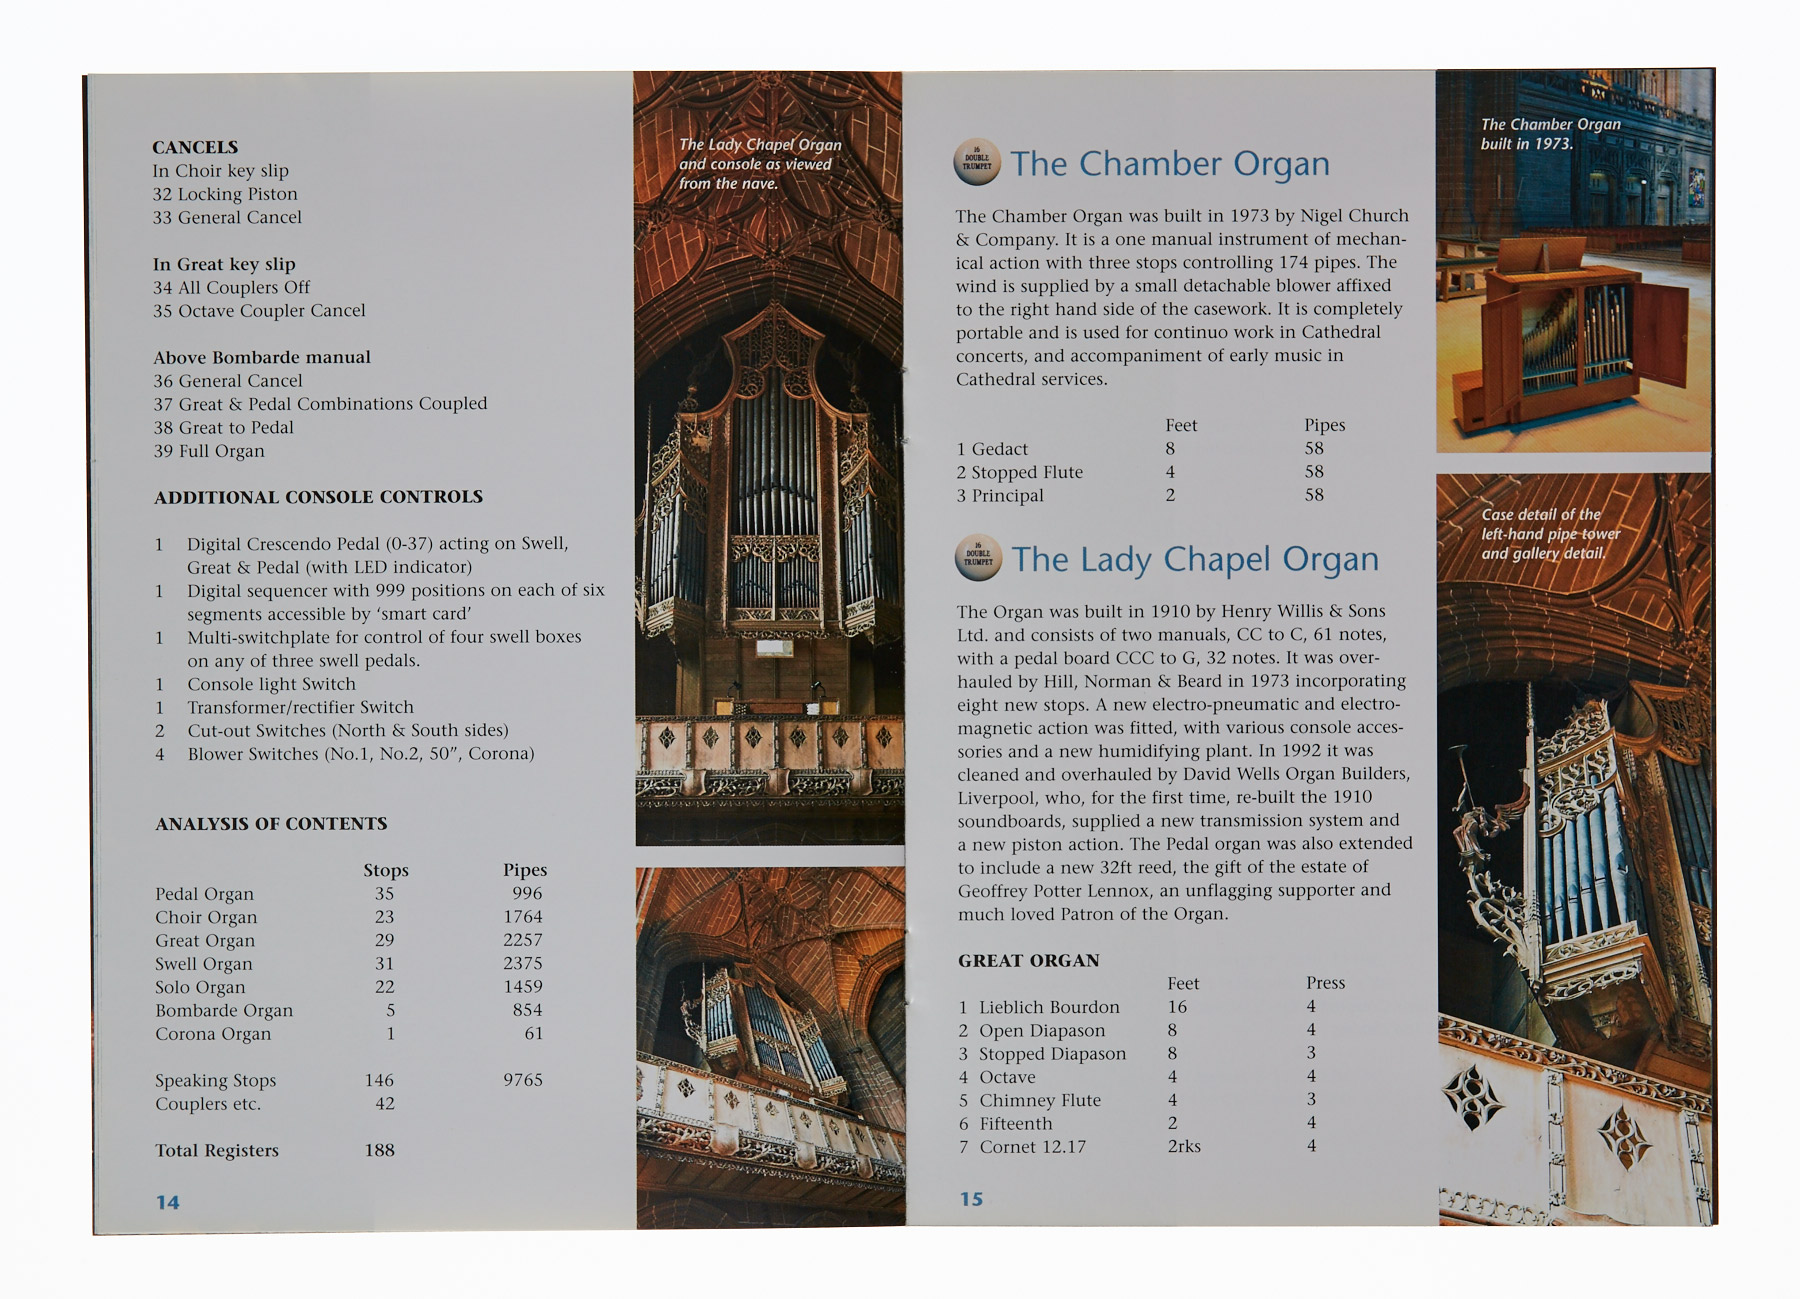 liverpool-cathedral-organ-08.jpg